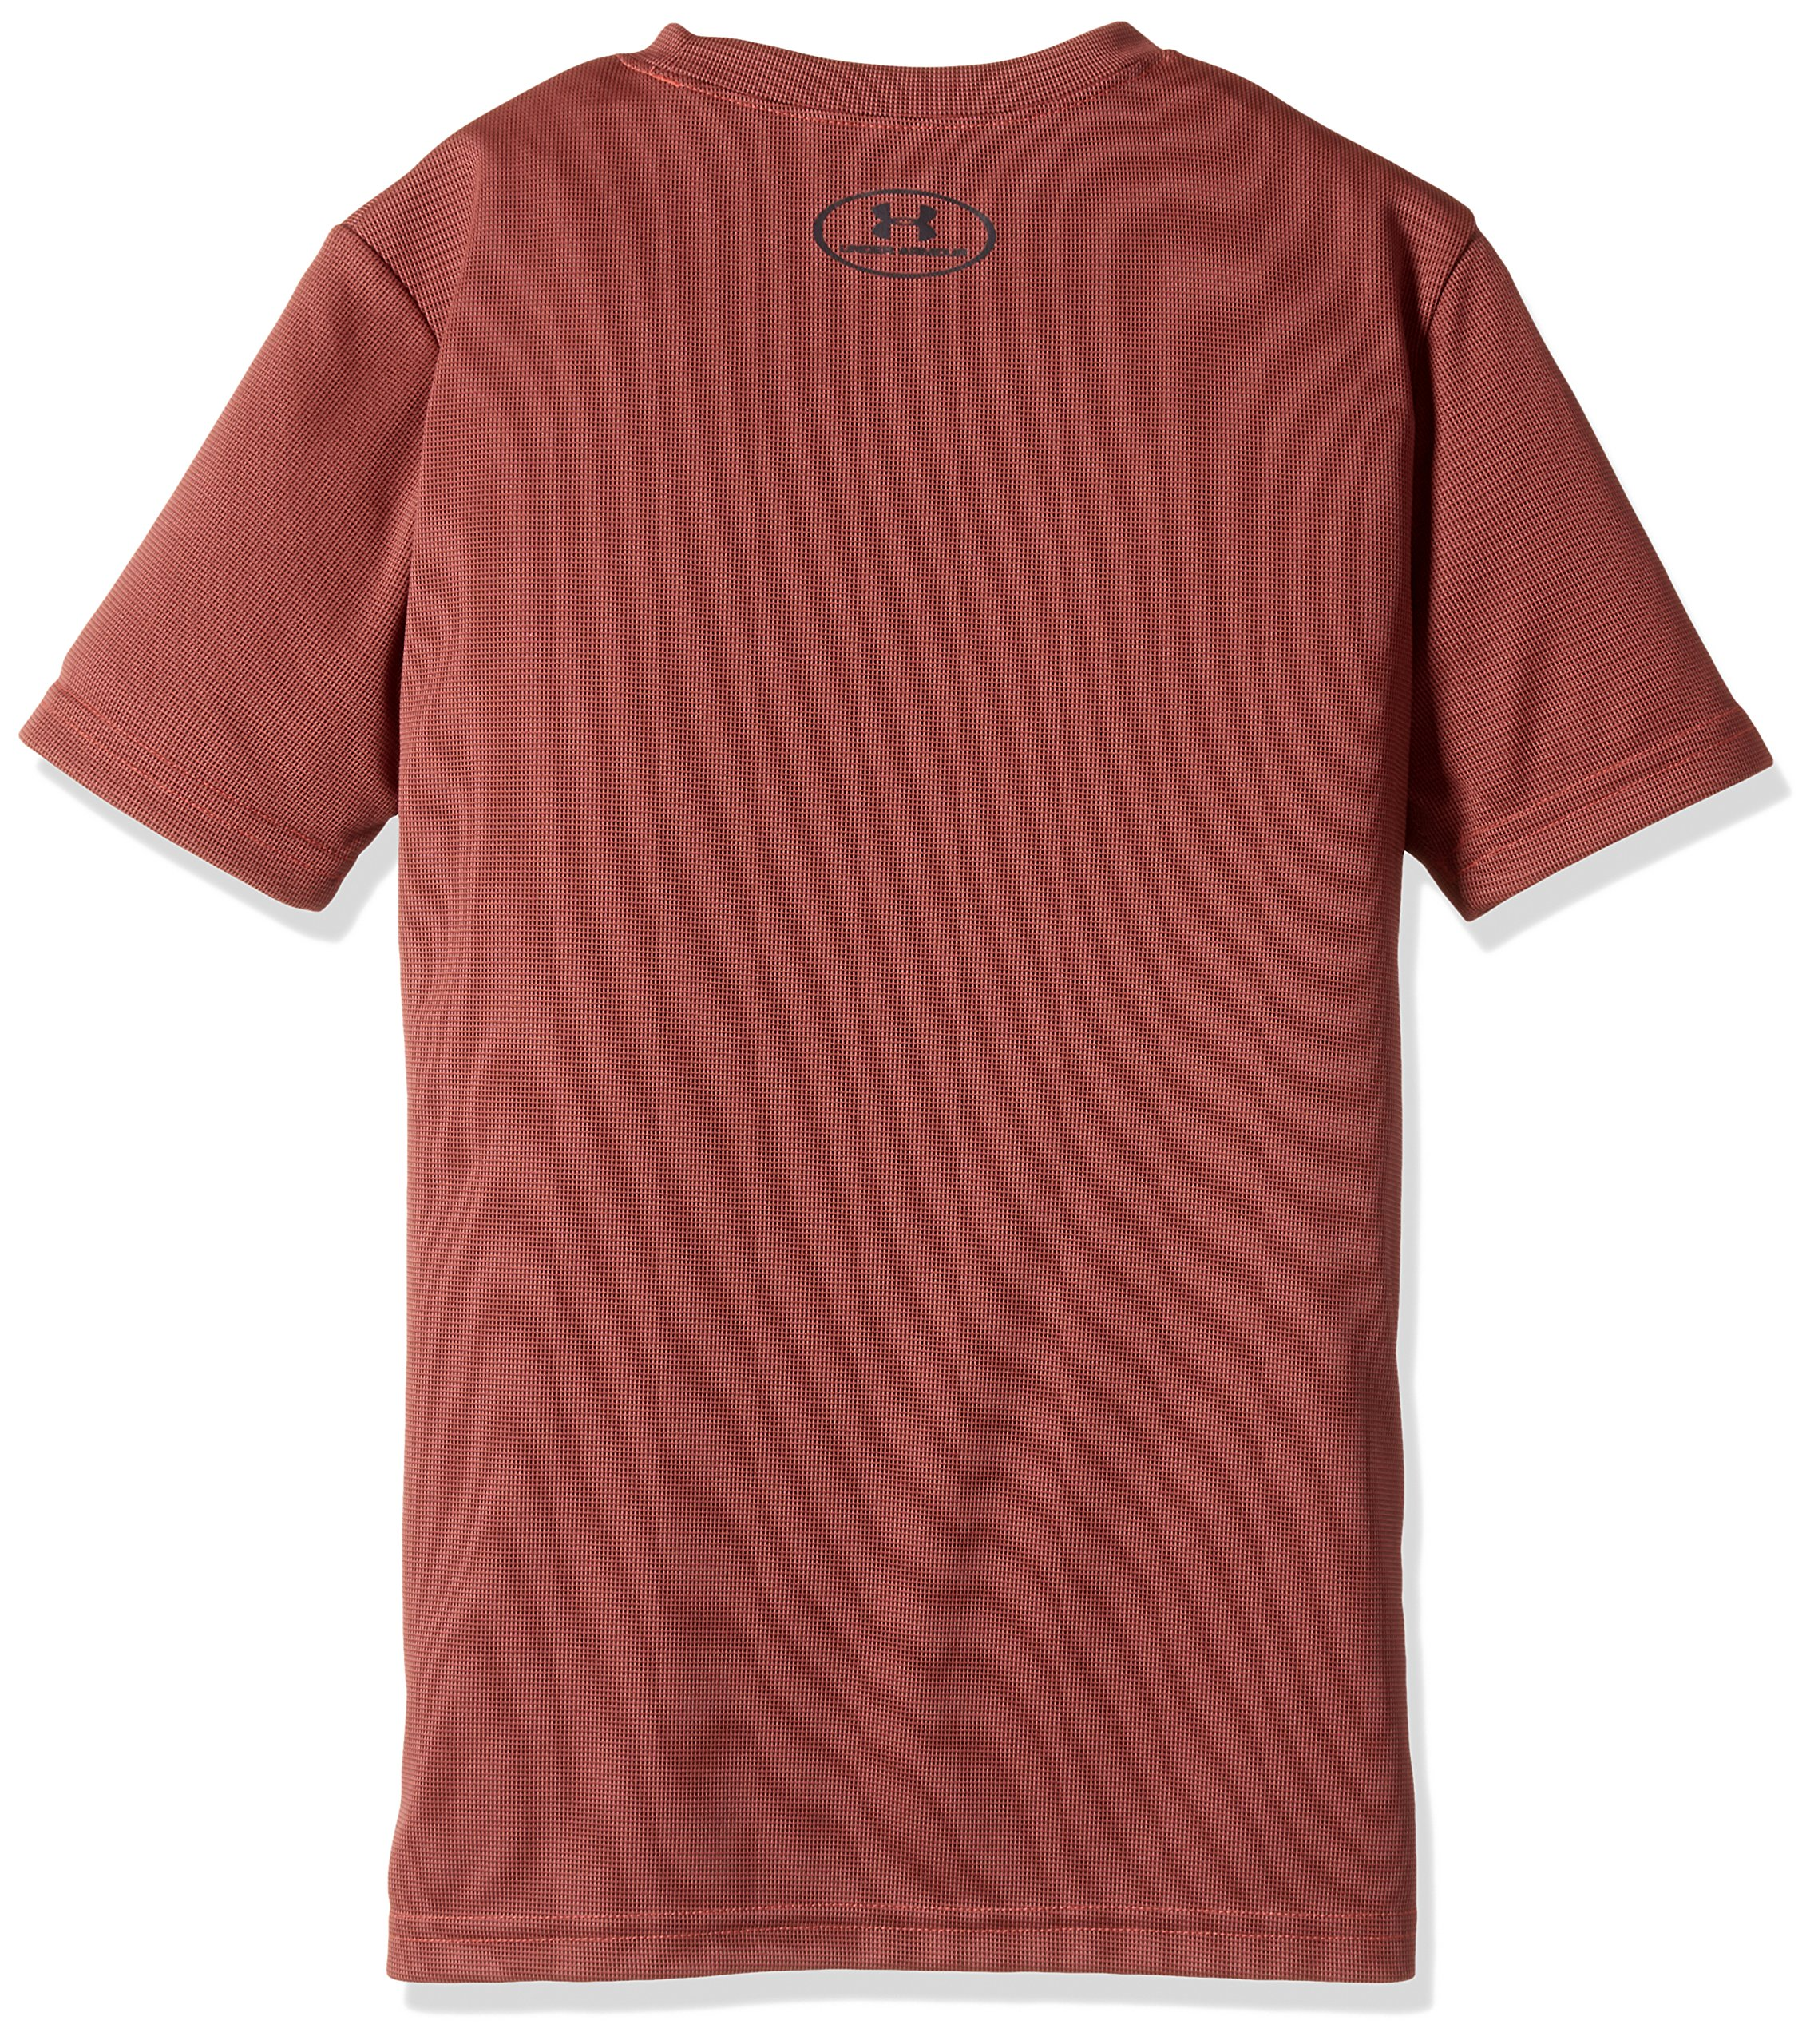 Under Armour Kids Boy's Crossfade Tee (Big Kids) Neon Coral/Stealth Gray/Neon Coral Small by Under Armour (Image #2)